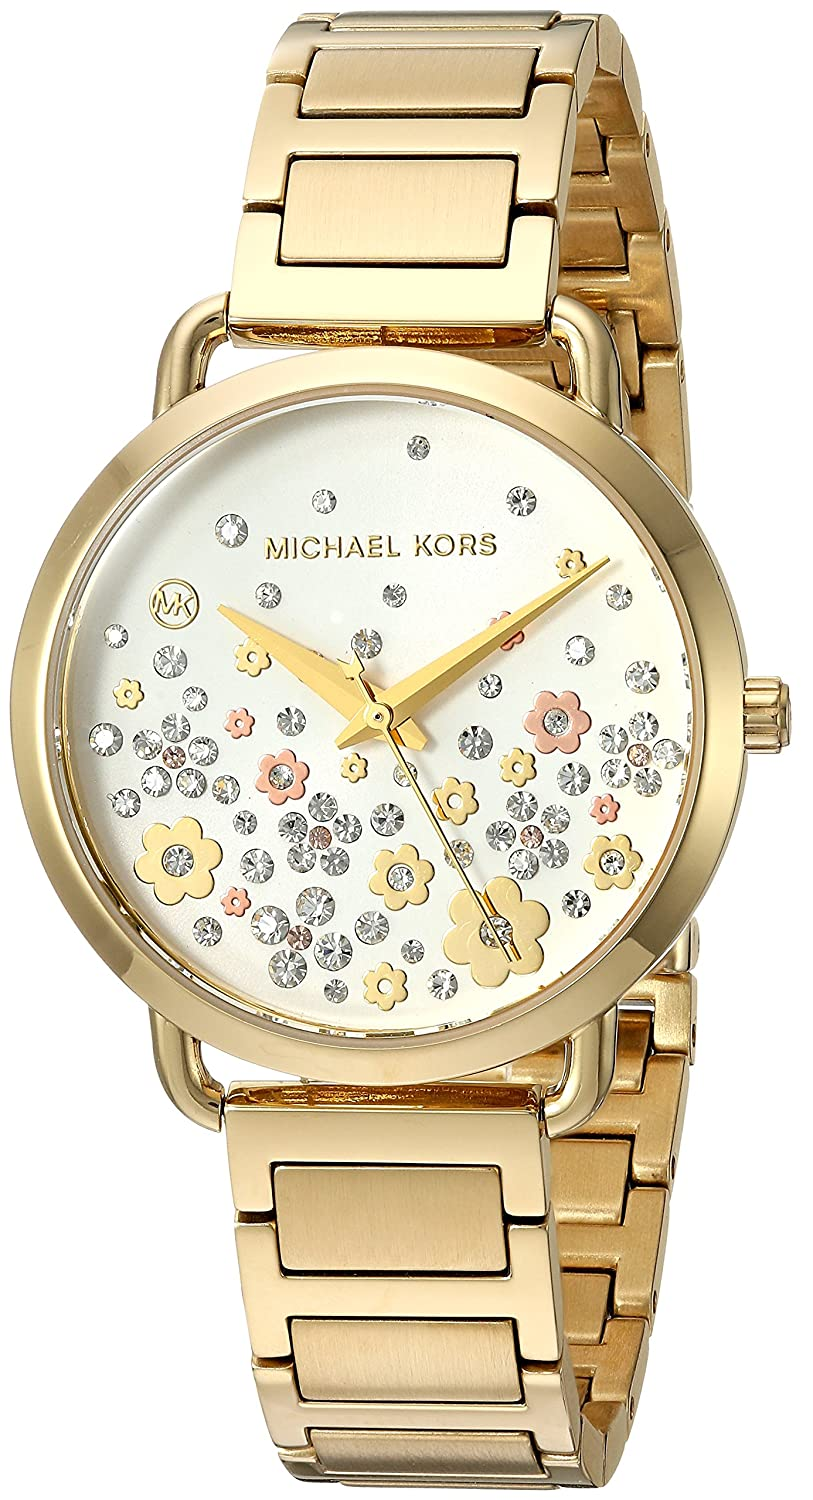 MK golden watch